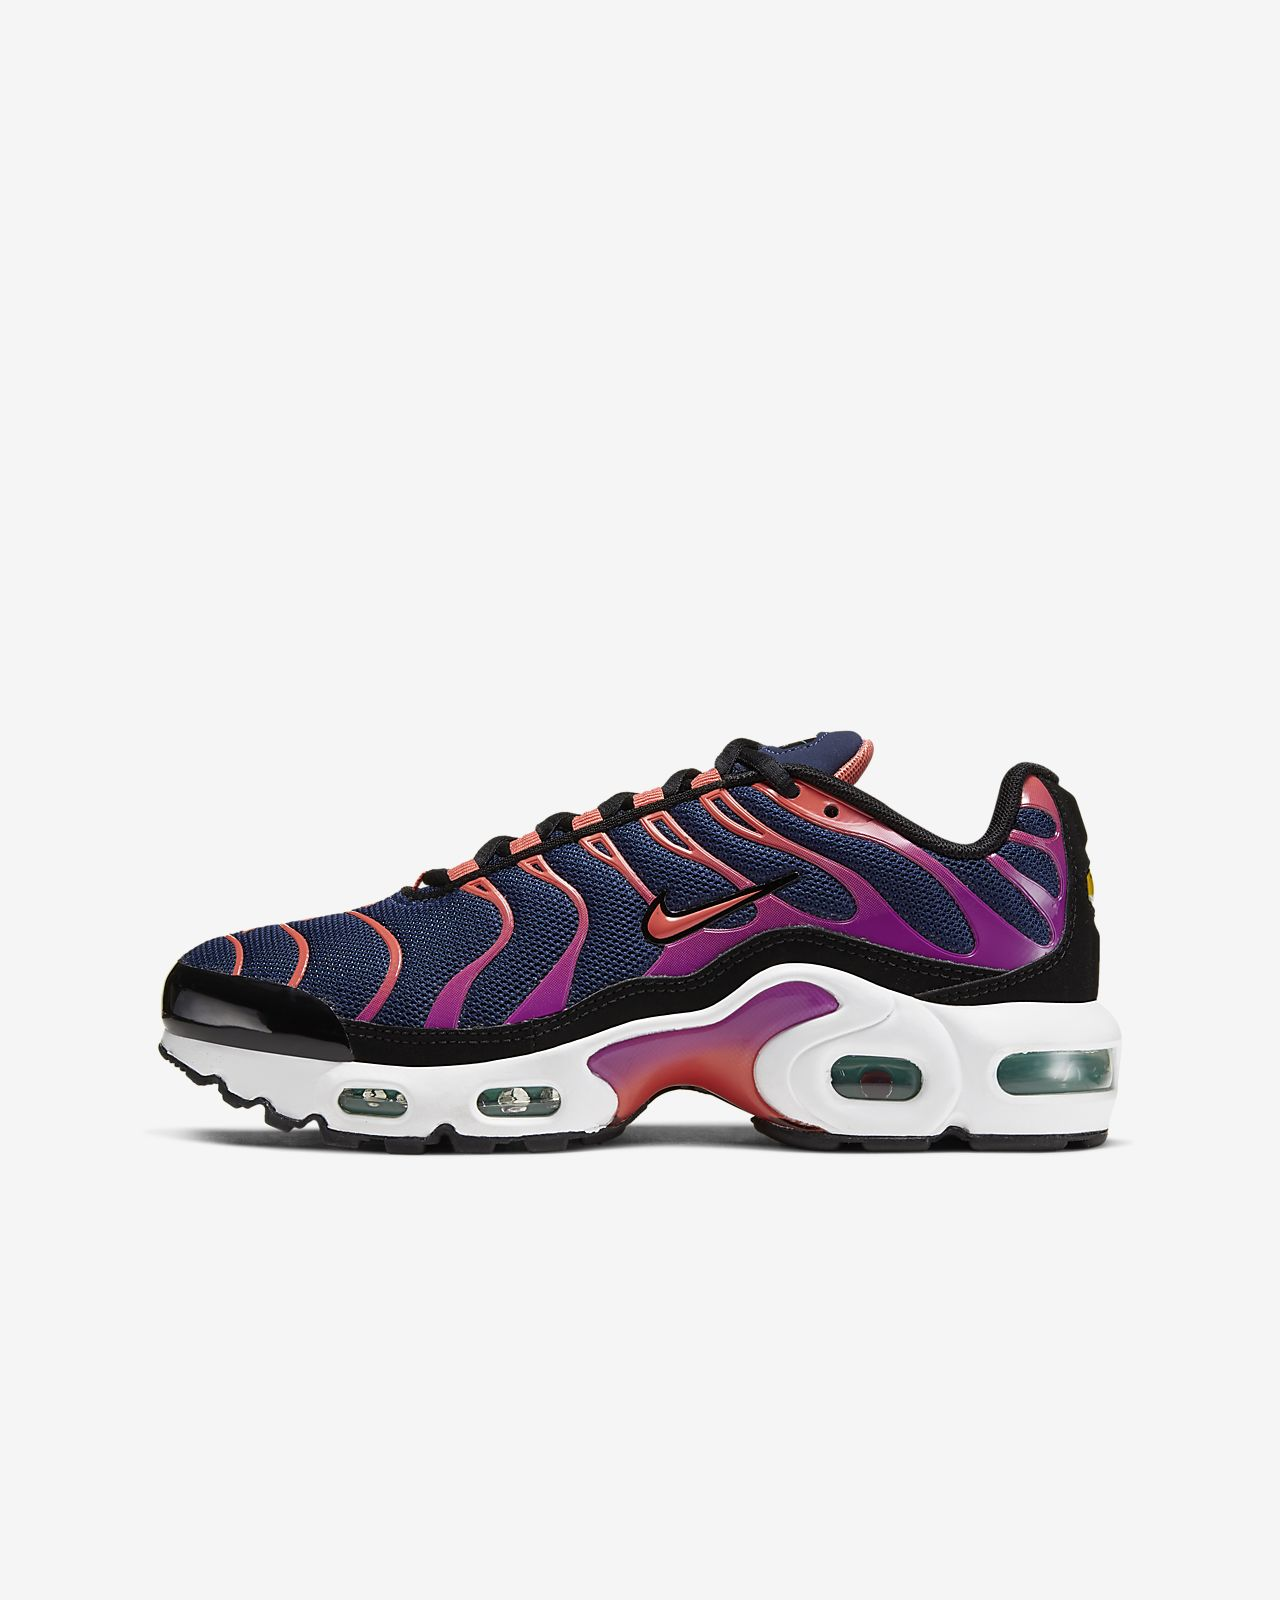 YOUTH NIKE AIR MAX PLUS  RUNNING SHOES